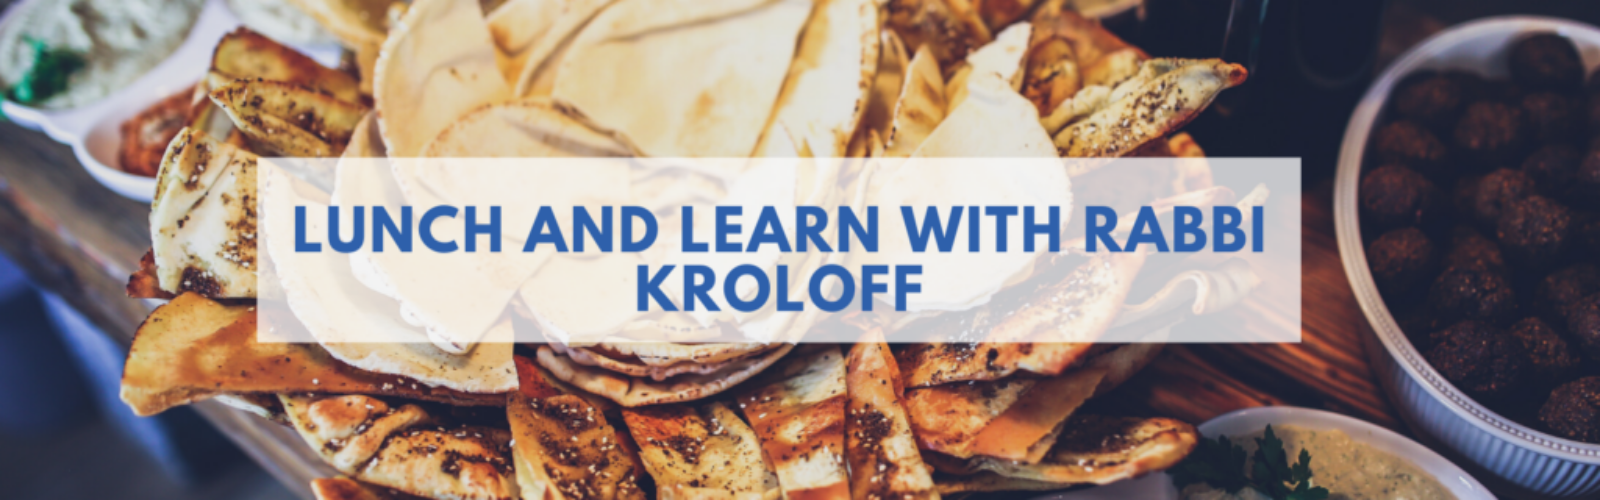 Lunch and learn with Rabbi Kroloff (600 x 500 px)